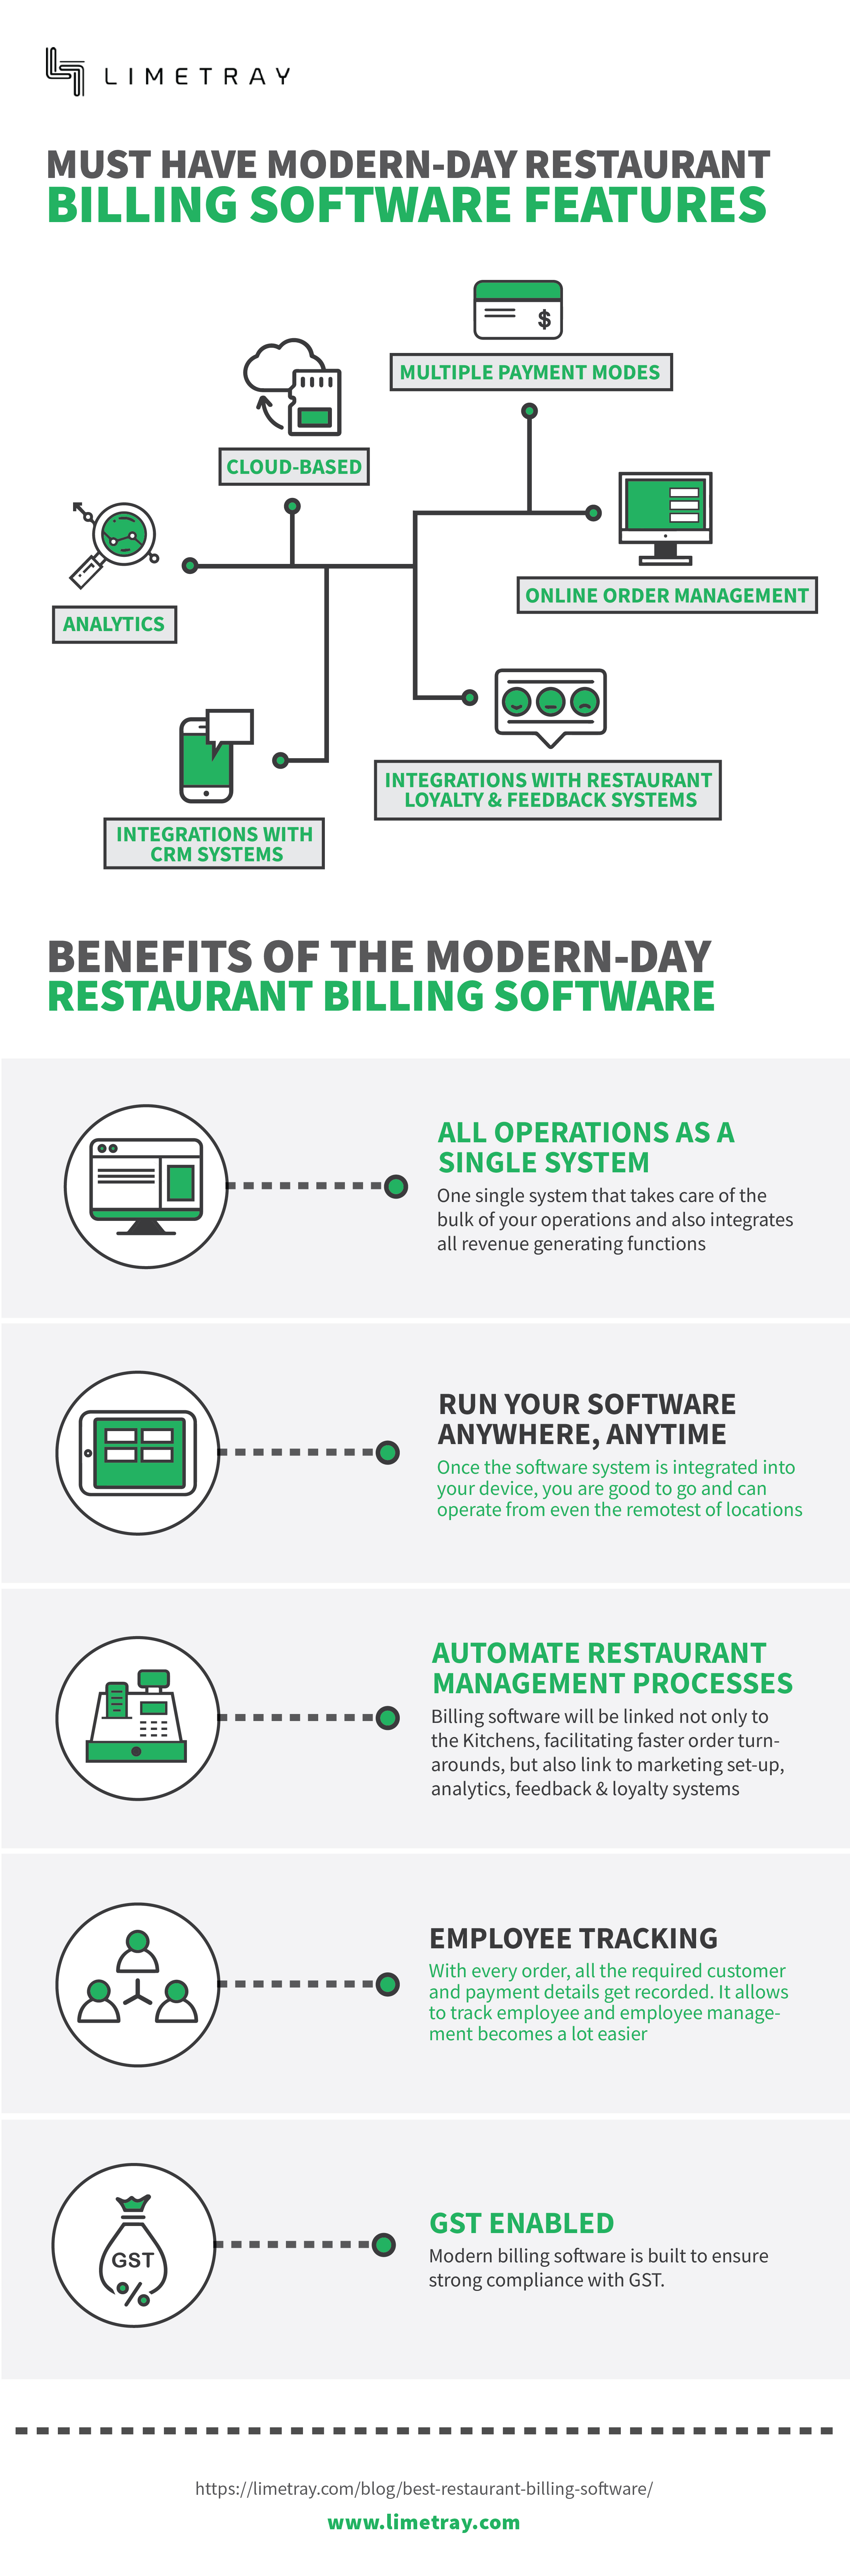 A graphic showing the features and benefits of the modern restaurant billing system